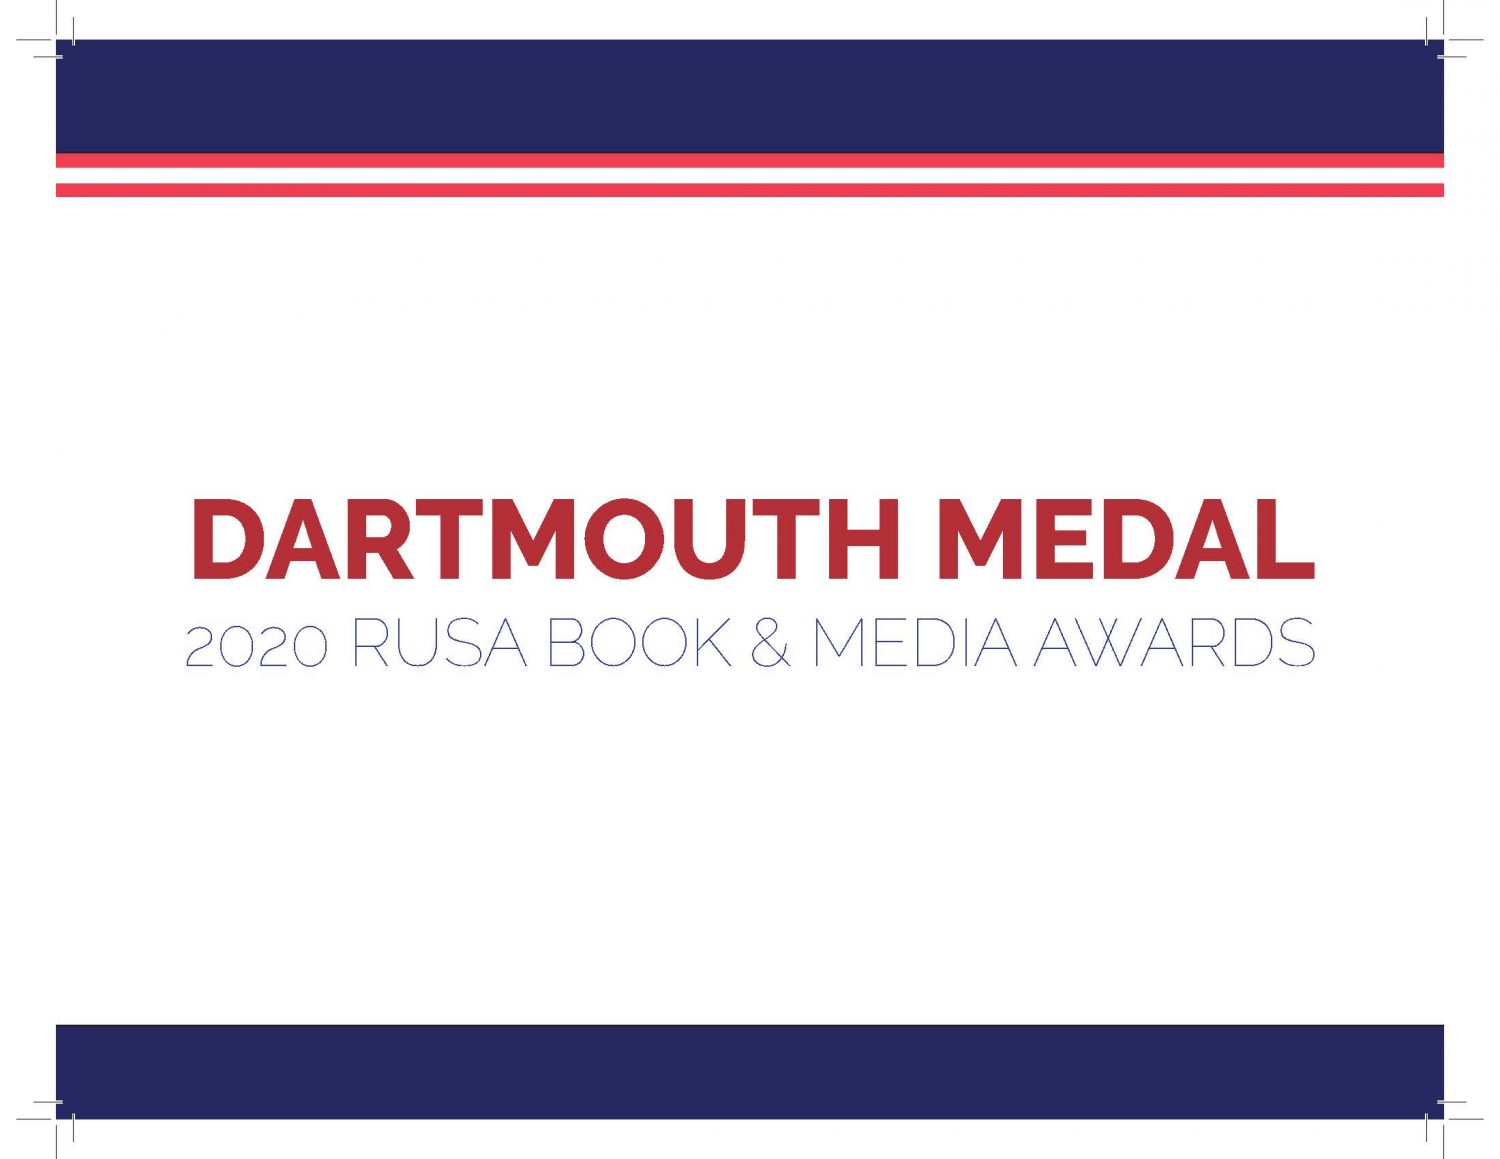 Dartmouth Medal for excellence in reference awarded to 'Global Encyclopedia of Lesbian, Gay, Bisexual, Transgender, and Queer (LGBTQ) History'